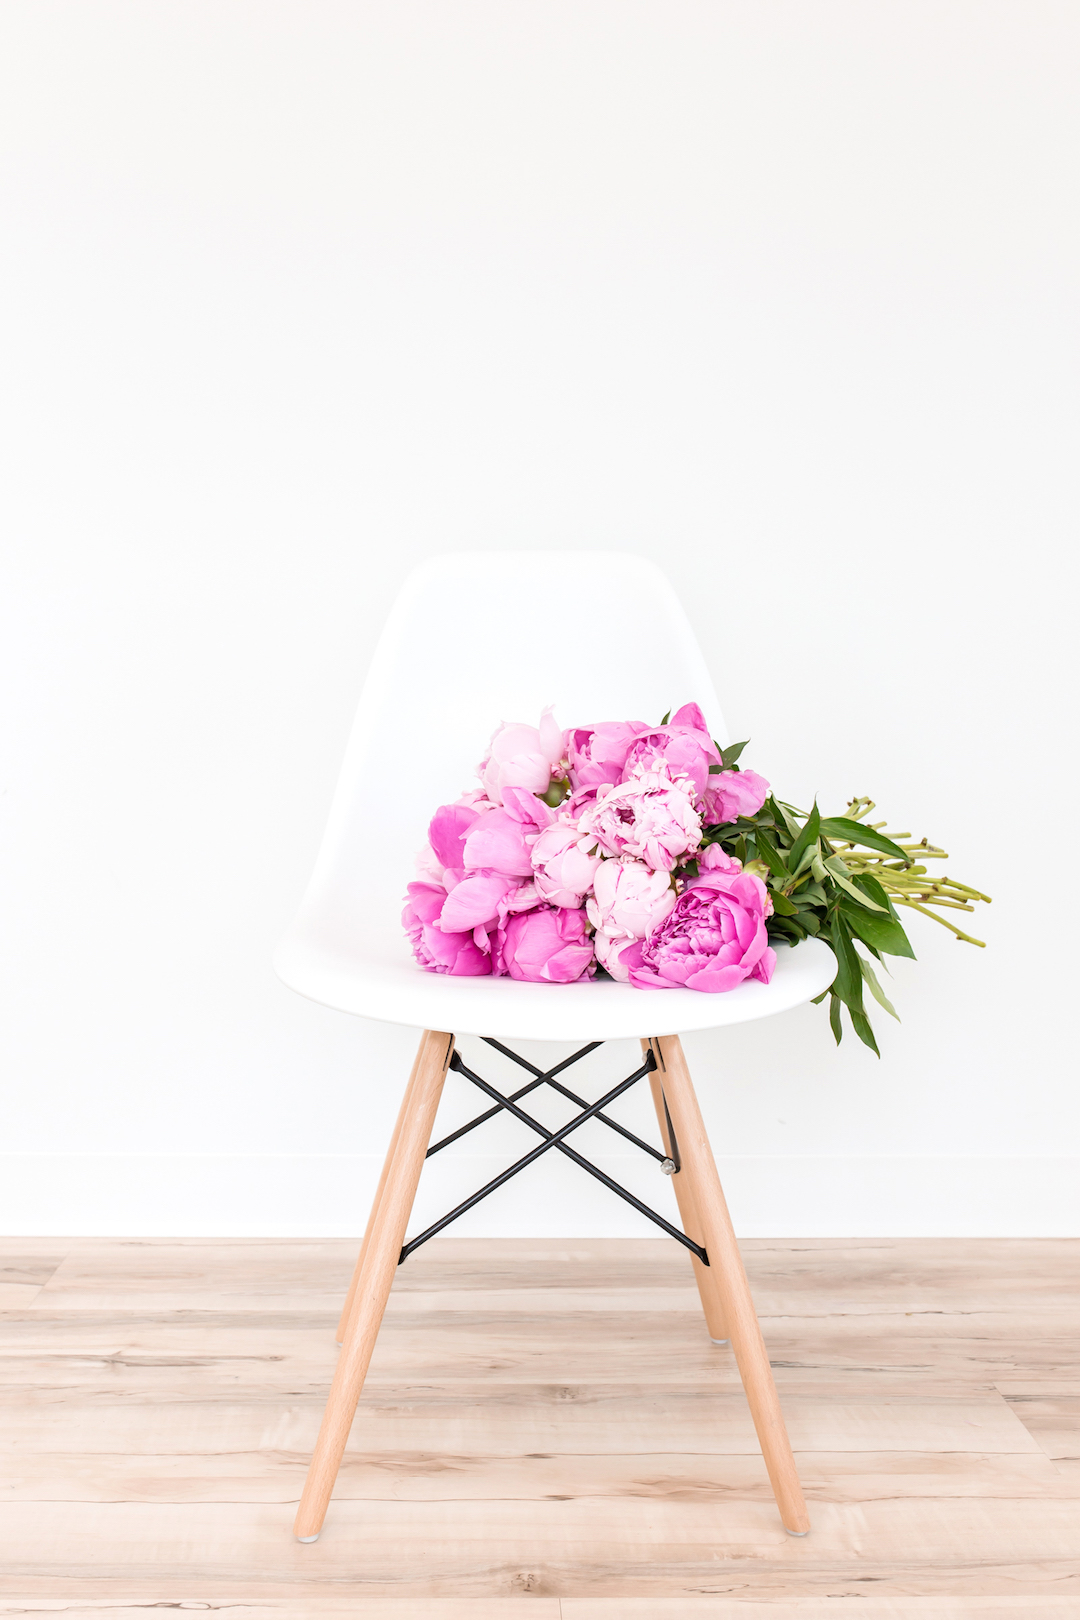 A bouquet of peonies on a modern white chair in front of a white wall and wooden floor